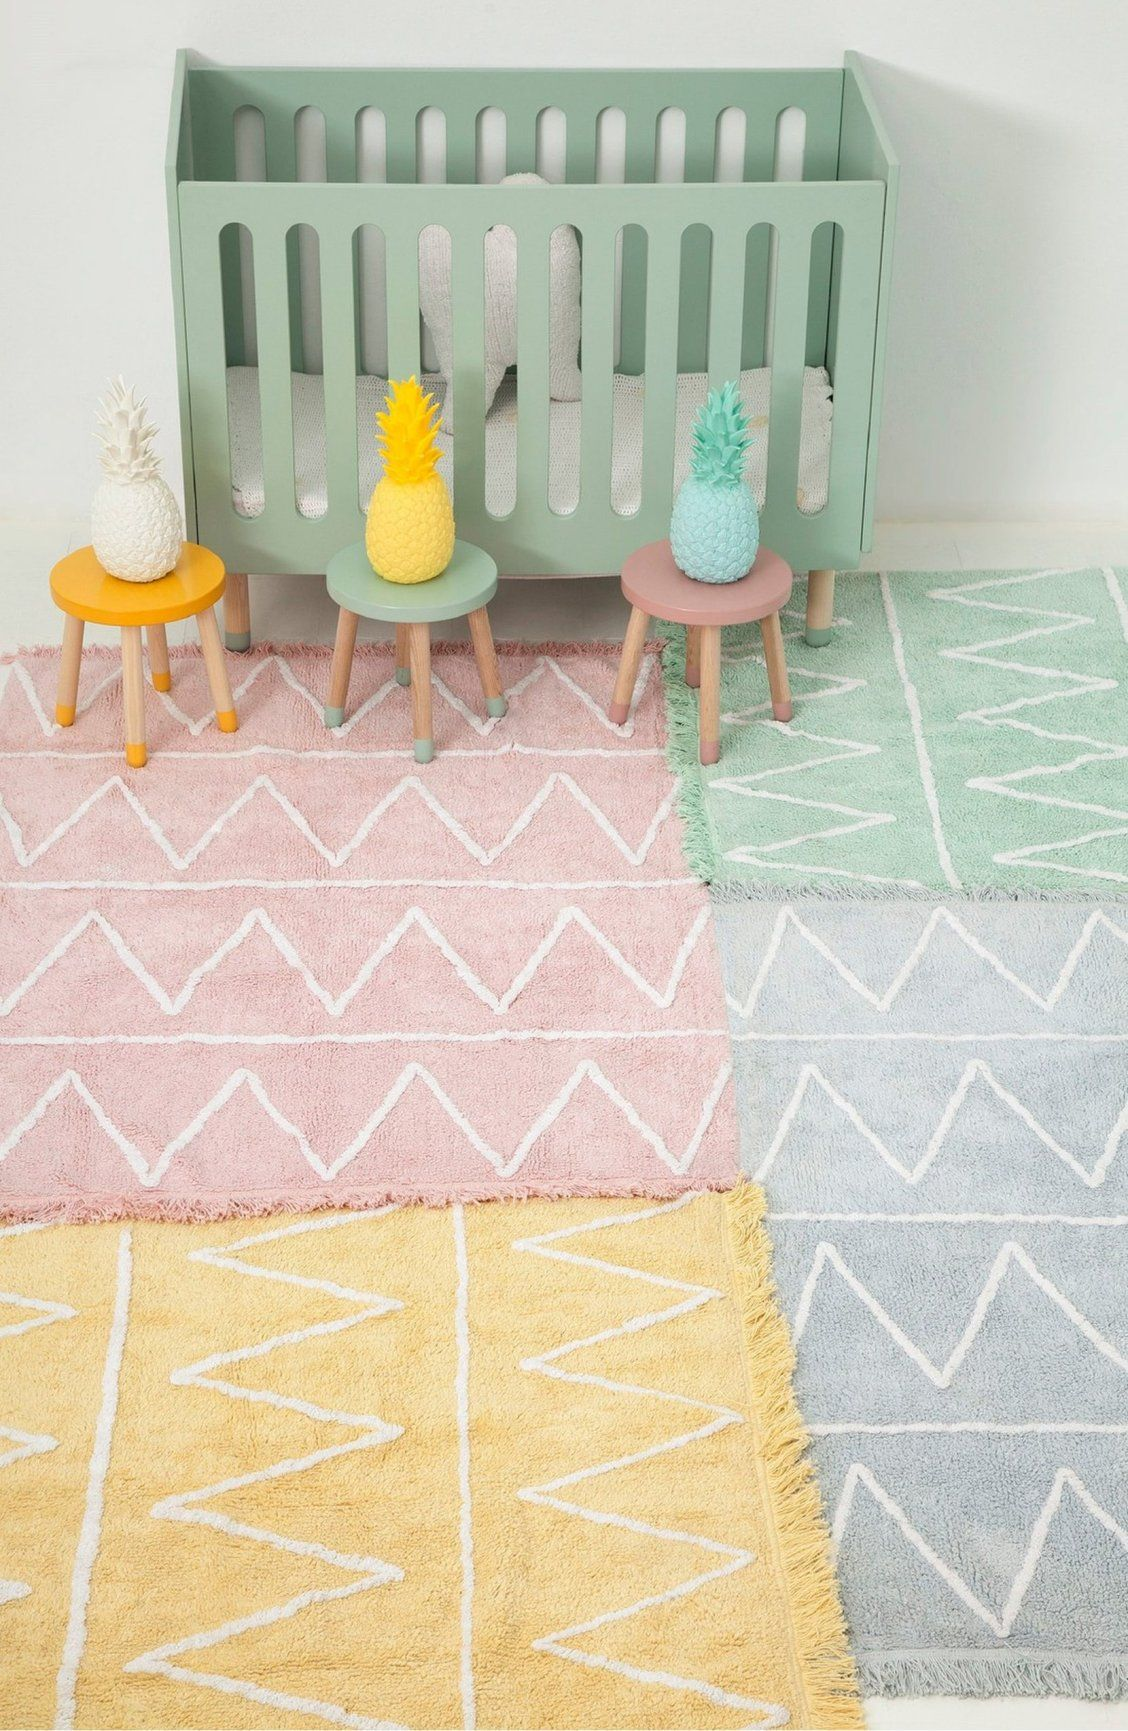 A Zigzag Patterned Pastel Rug Thats Hand Loomed And Trimmed In Fringe